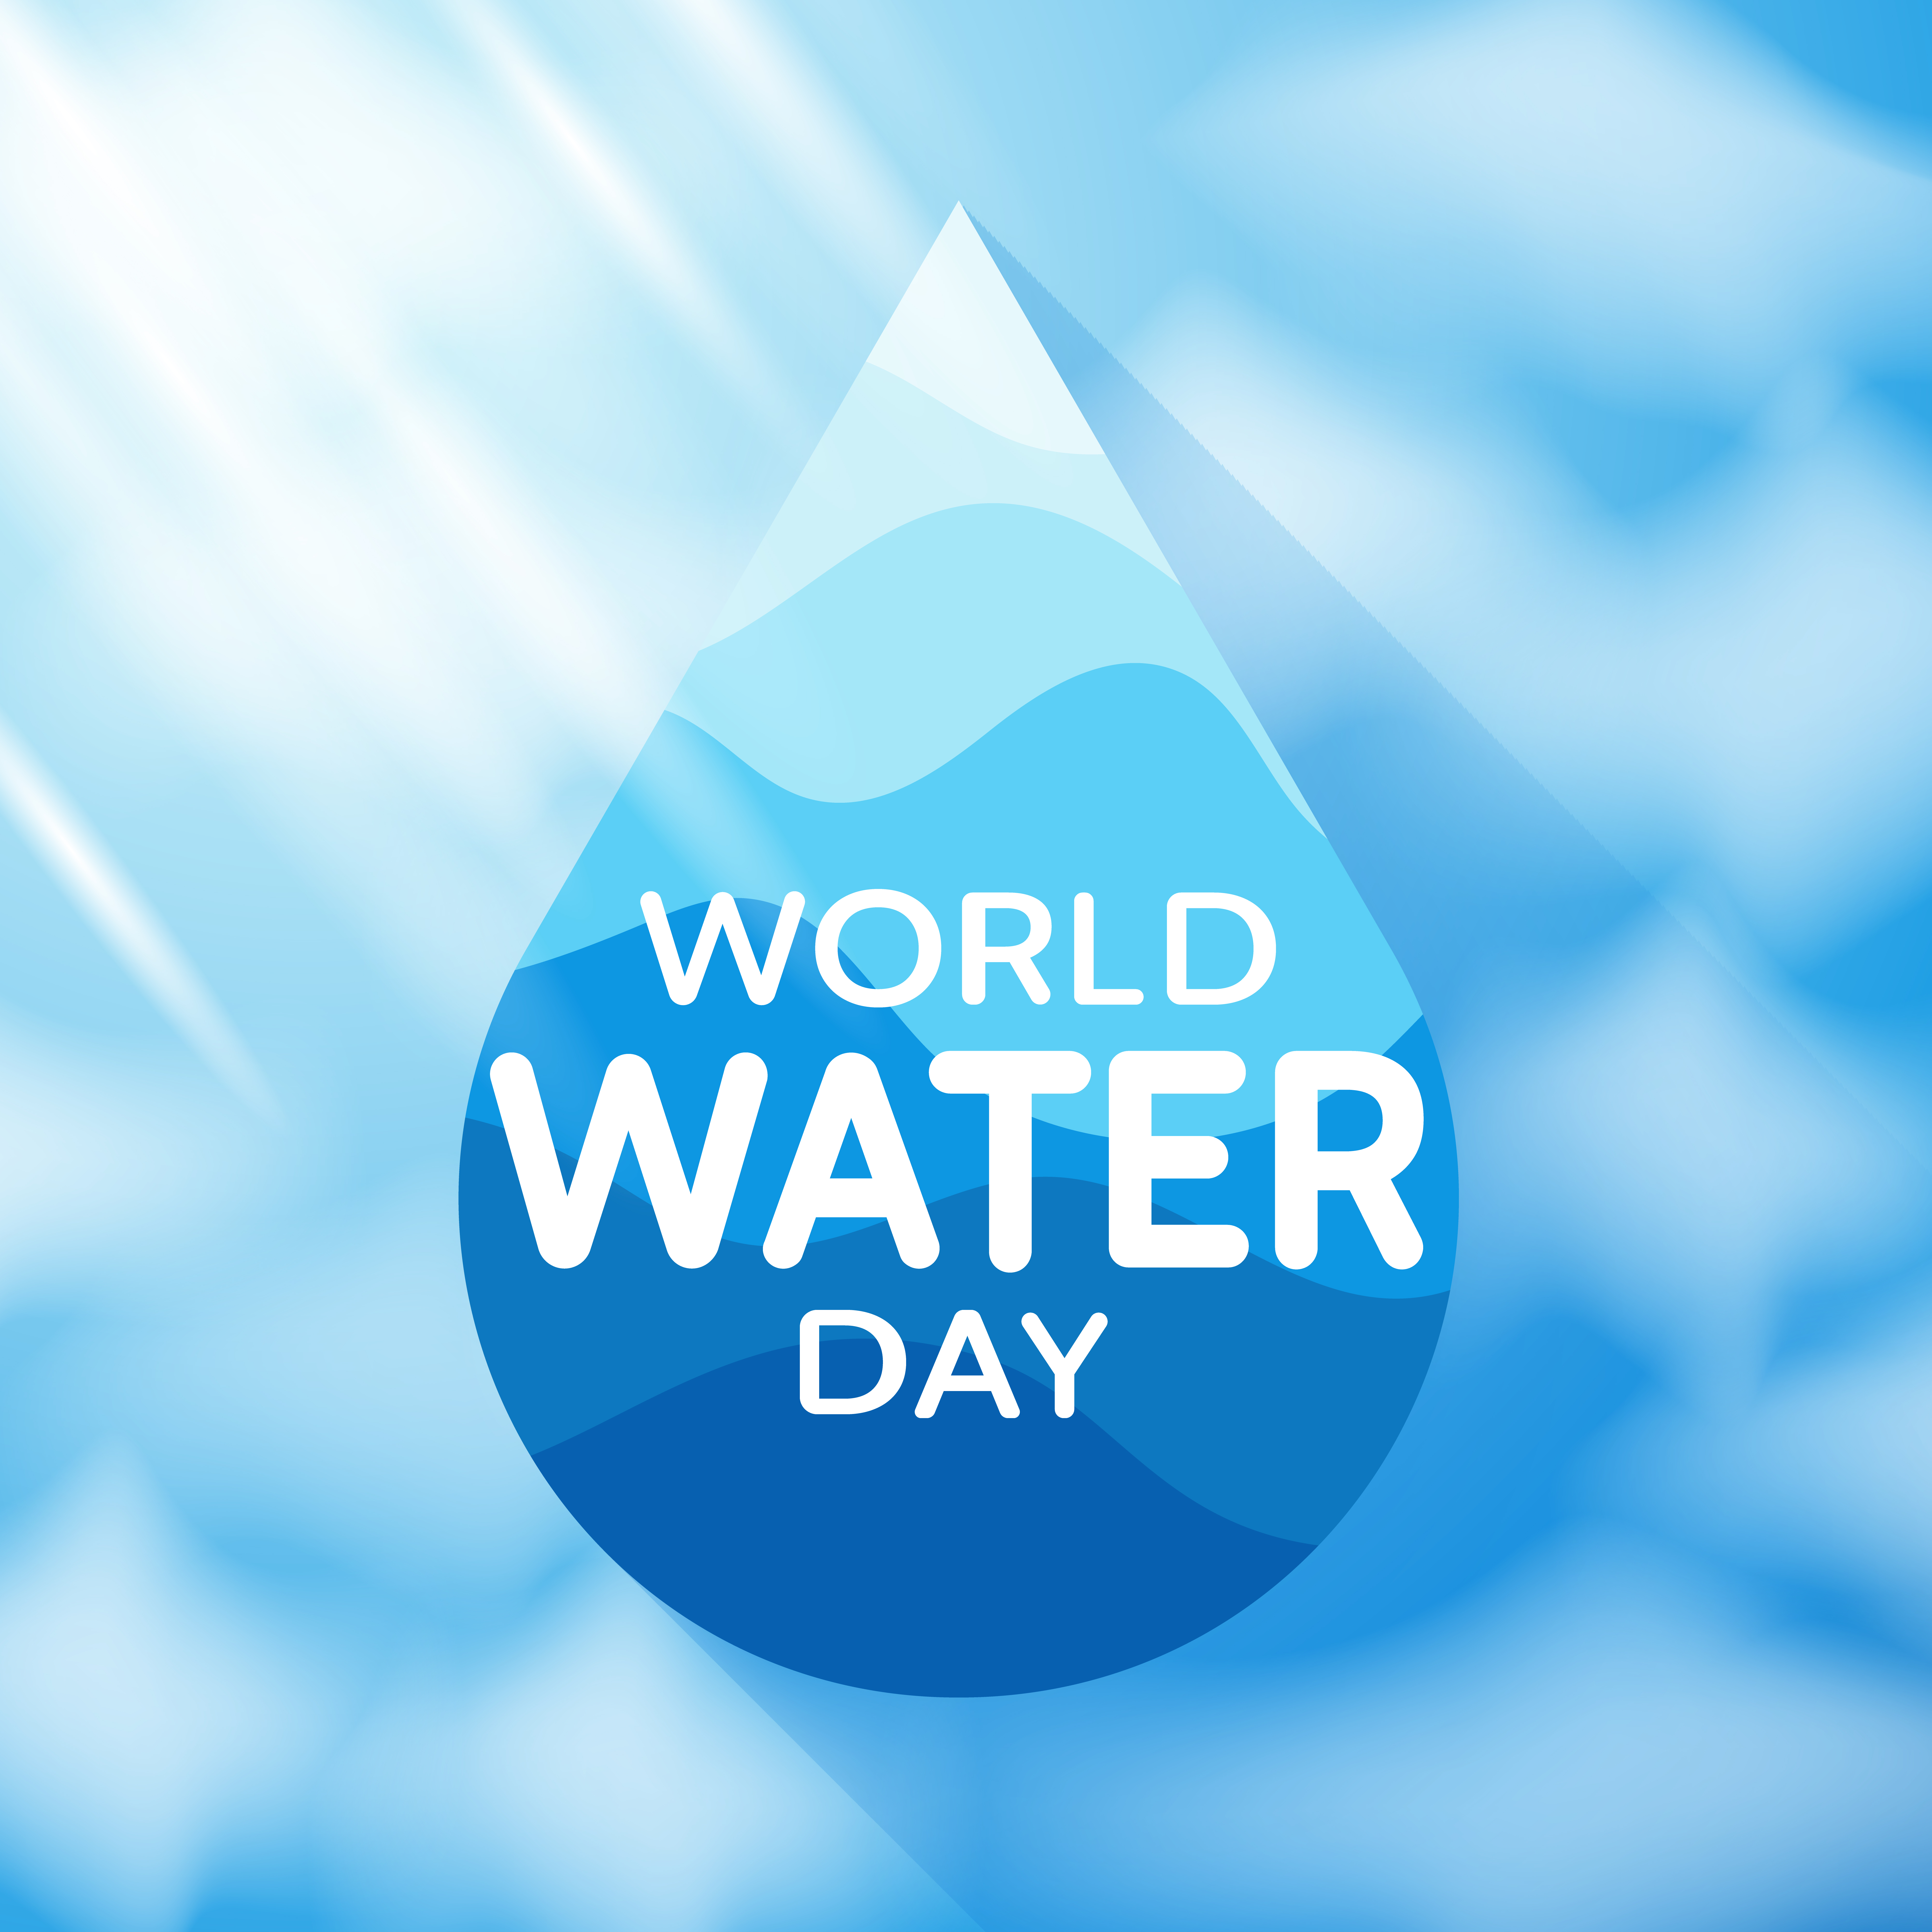 World Water Day Poster with Water Drop and Text